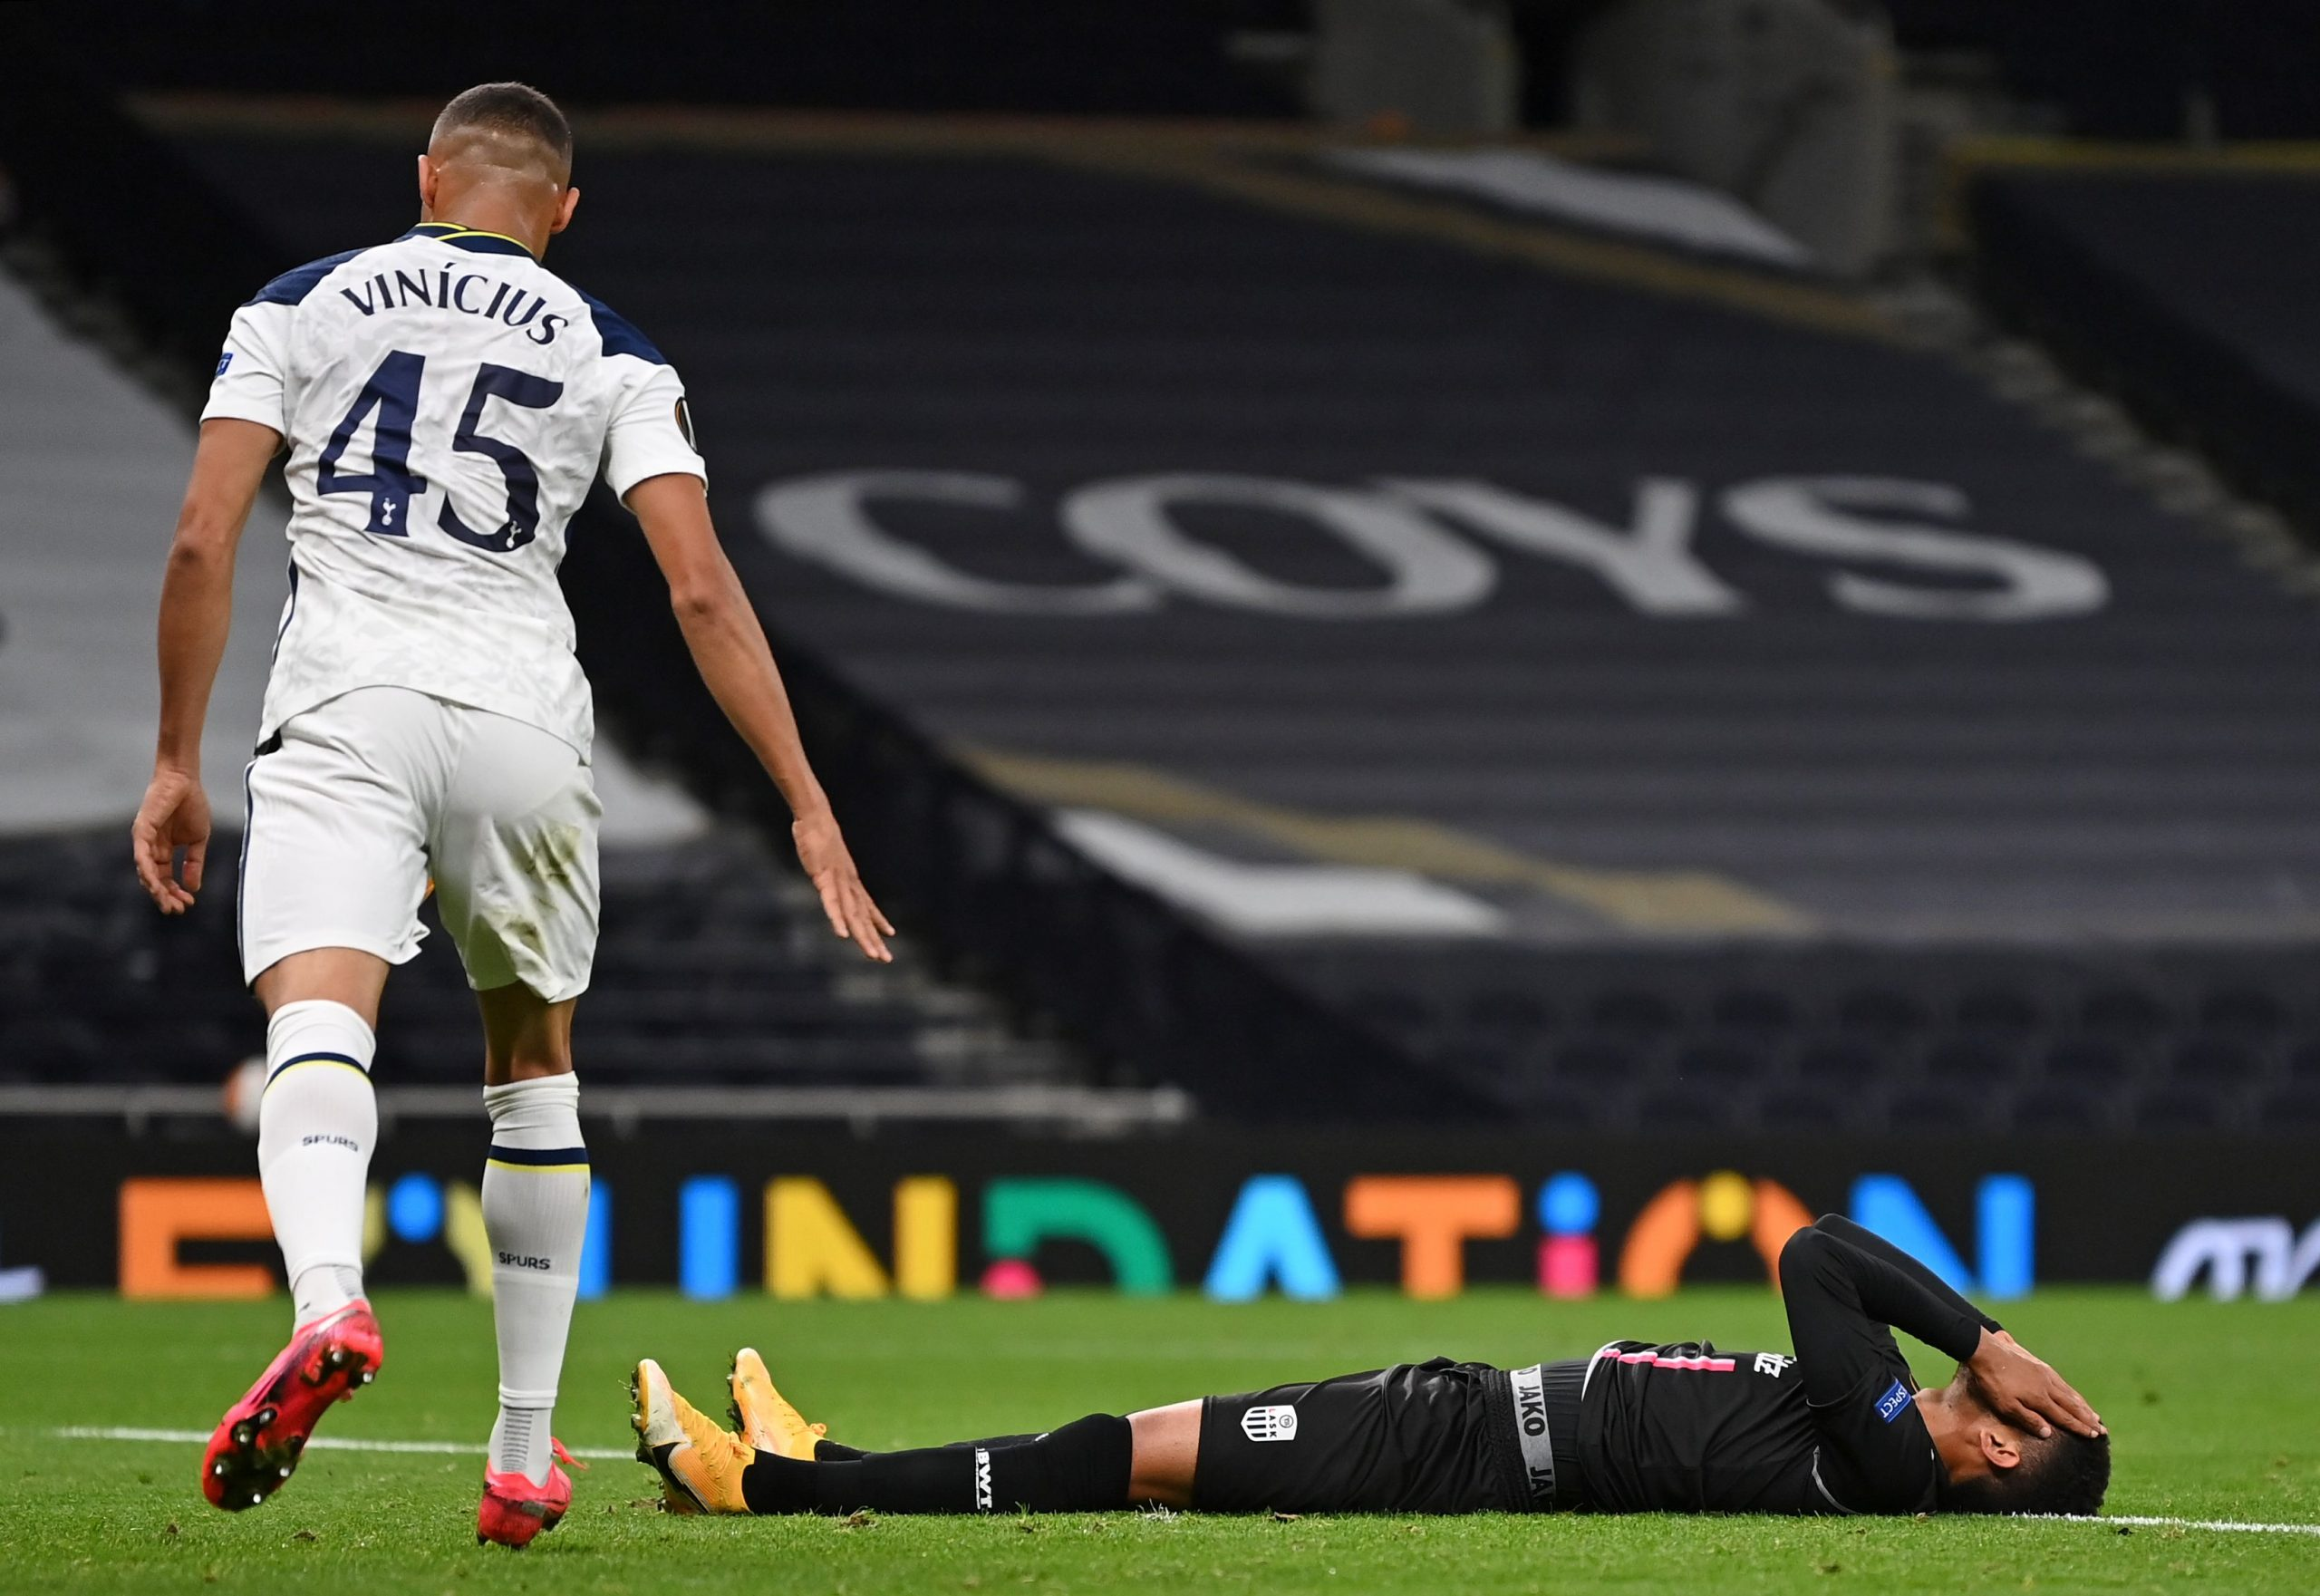 Carlos Vinicius impressed on his Tottenham Hotspur debut